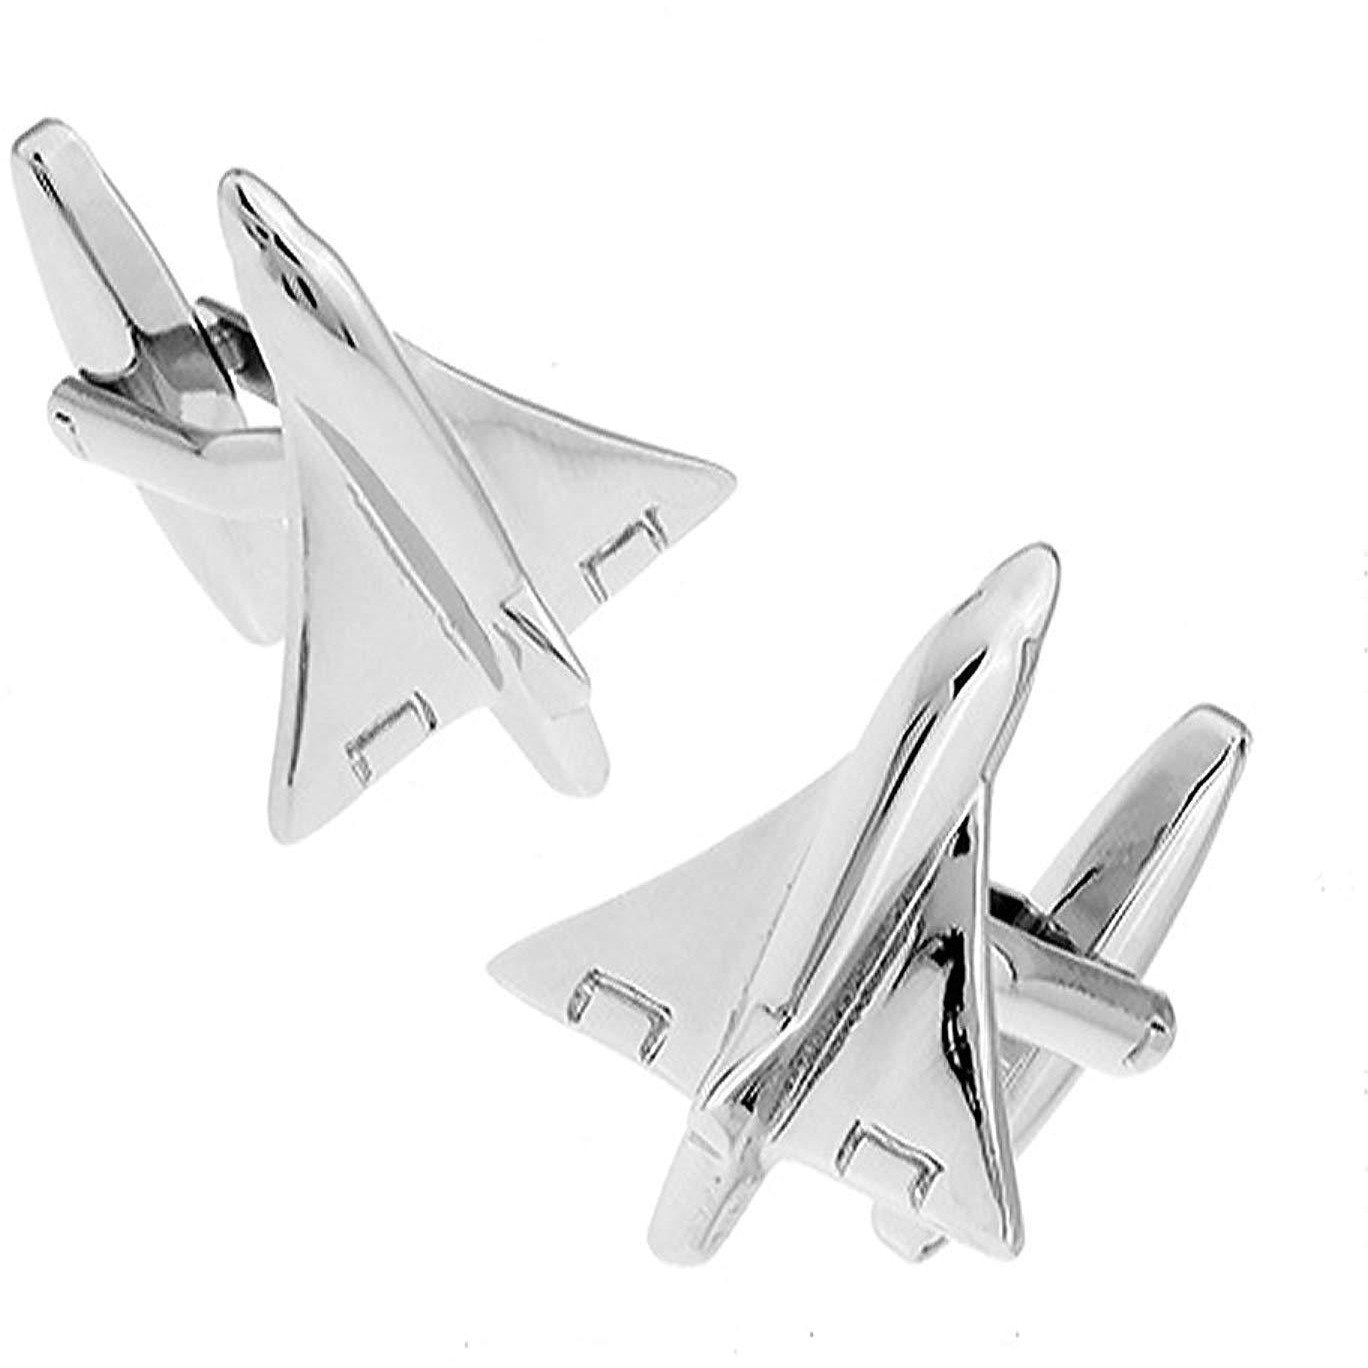 Mach 1 Fighter Jet Aeroplane Cufflinks